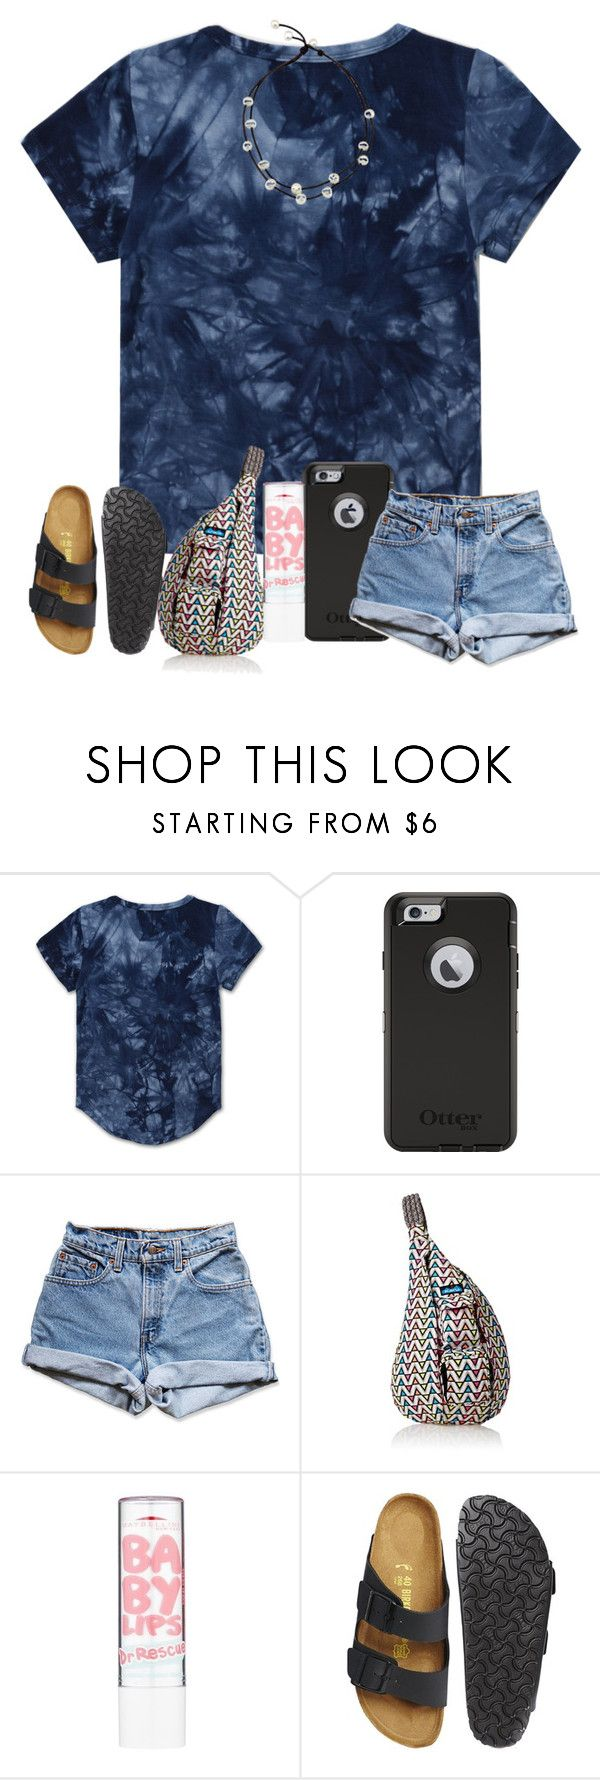 """finally bought new birks! "" by arieannahicks ❤ liked on Polyvore featuring Haus of JR, OtterBox, Levi's, Kavu, Maybelline and Birkenstock"